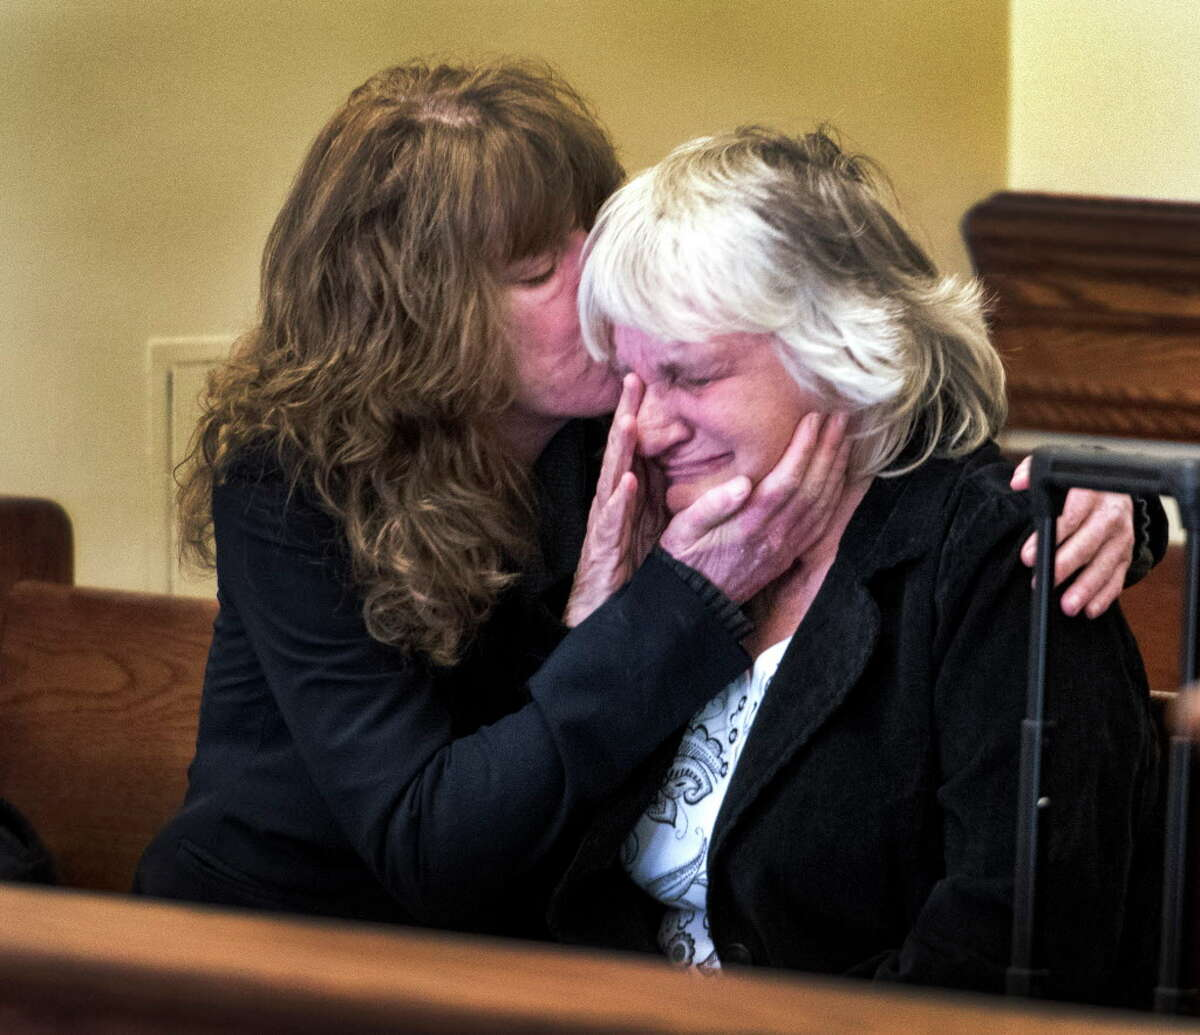 Linda Wright, sister of Richard J. Wright, and his mother Linda Wright react to the news that their brother and son who was sentenced for arson and double homicide 30 years ago was granted a retrial as a result of new evidence by Judge Andrew Ceresia Monday Oct. 2, 2017 in Troy, N.Y. (Skip Dickstein/Times Union)